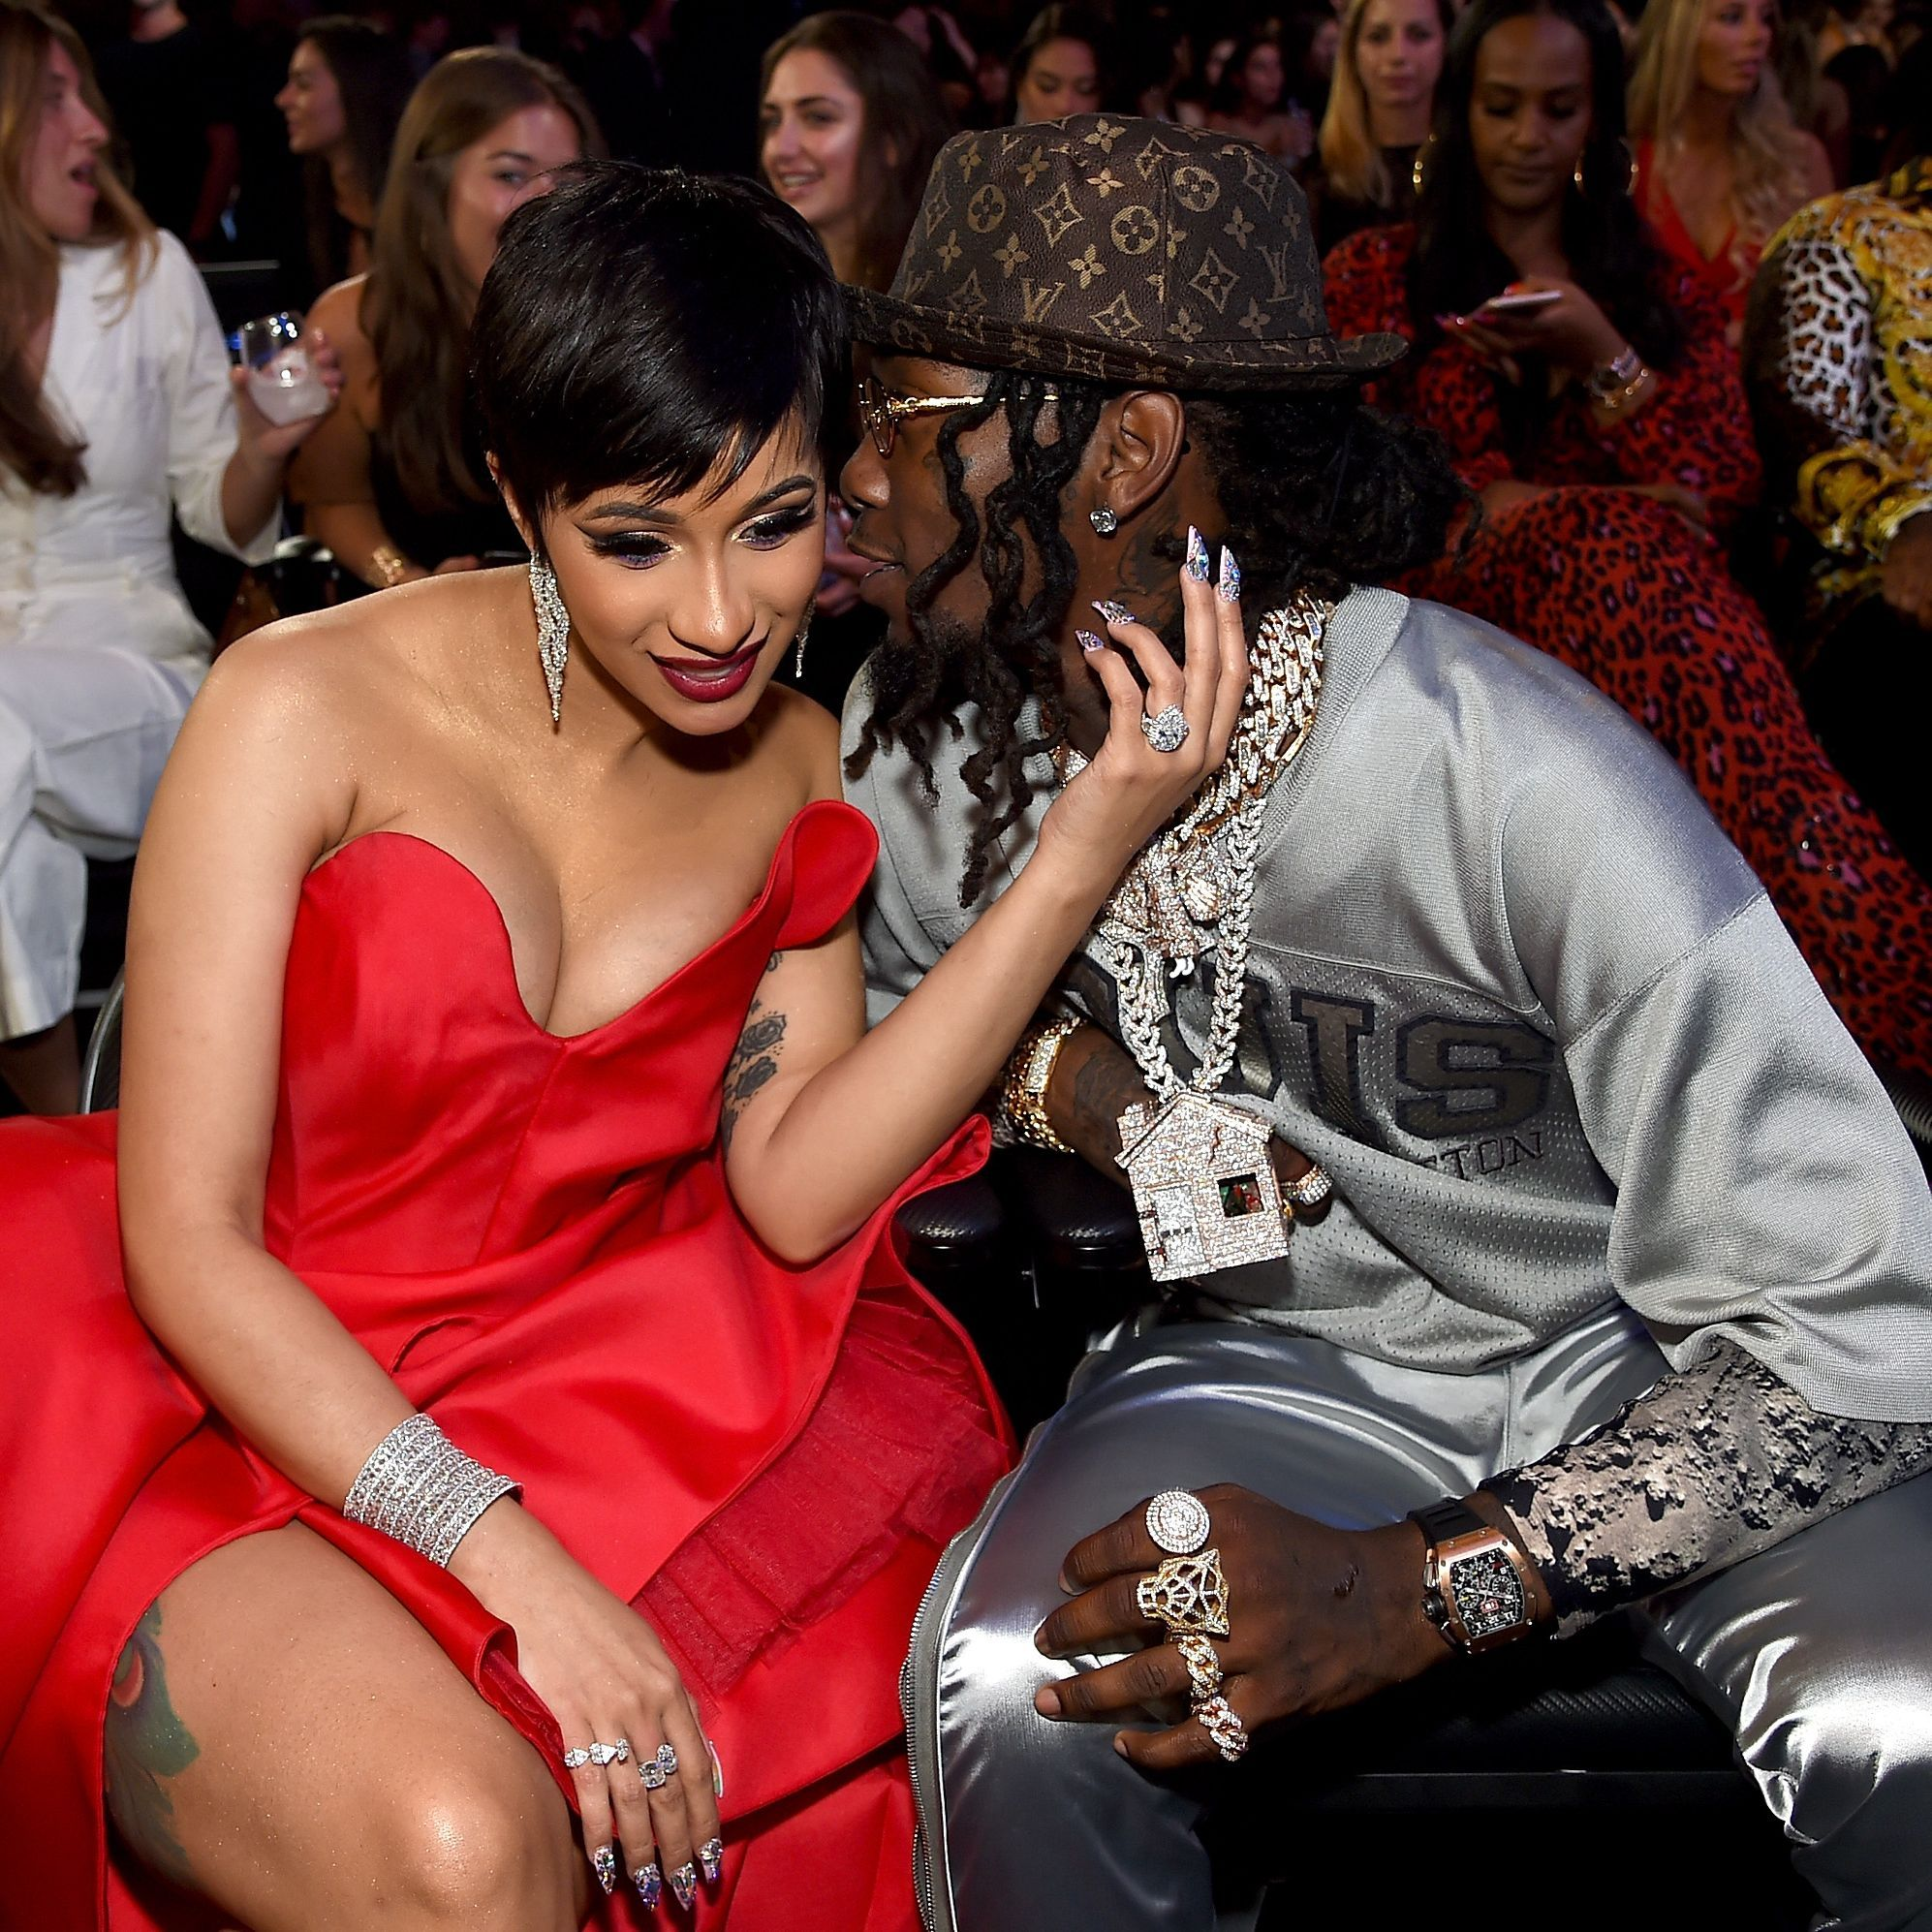 New Mom On The Loose Cardi B Had A Lit Mom S Night Out At The